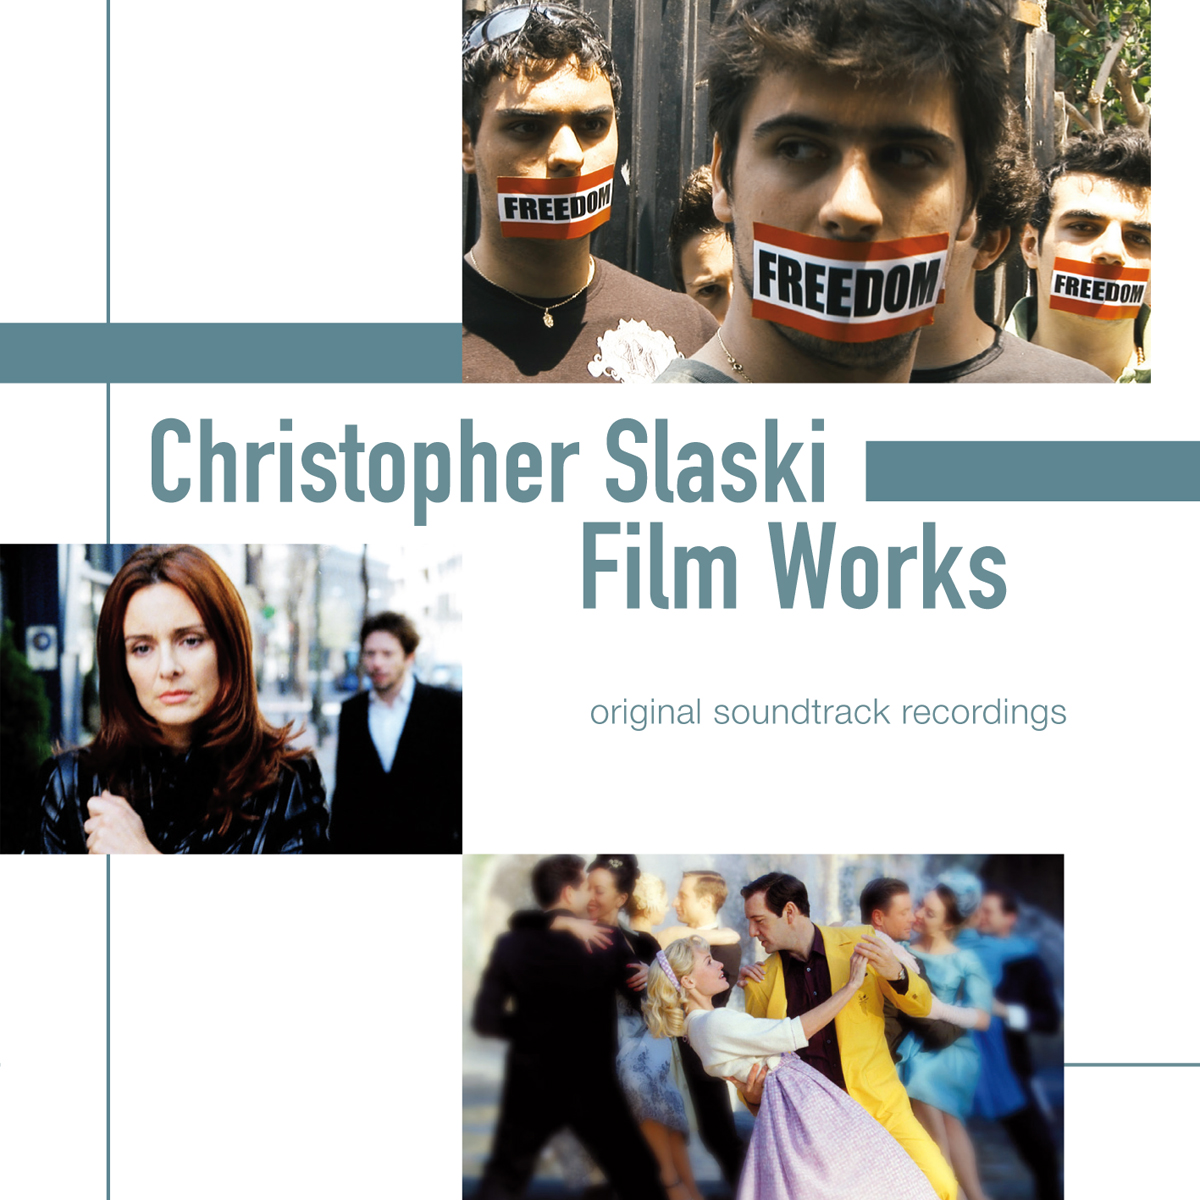 Christopher Slaski Film Works